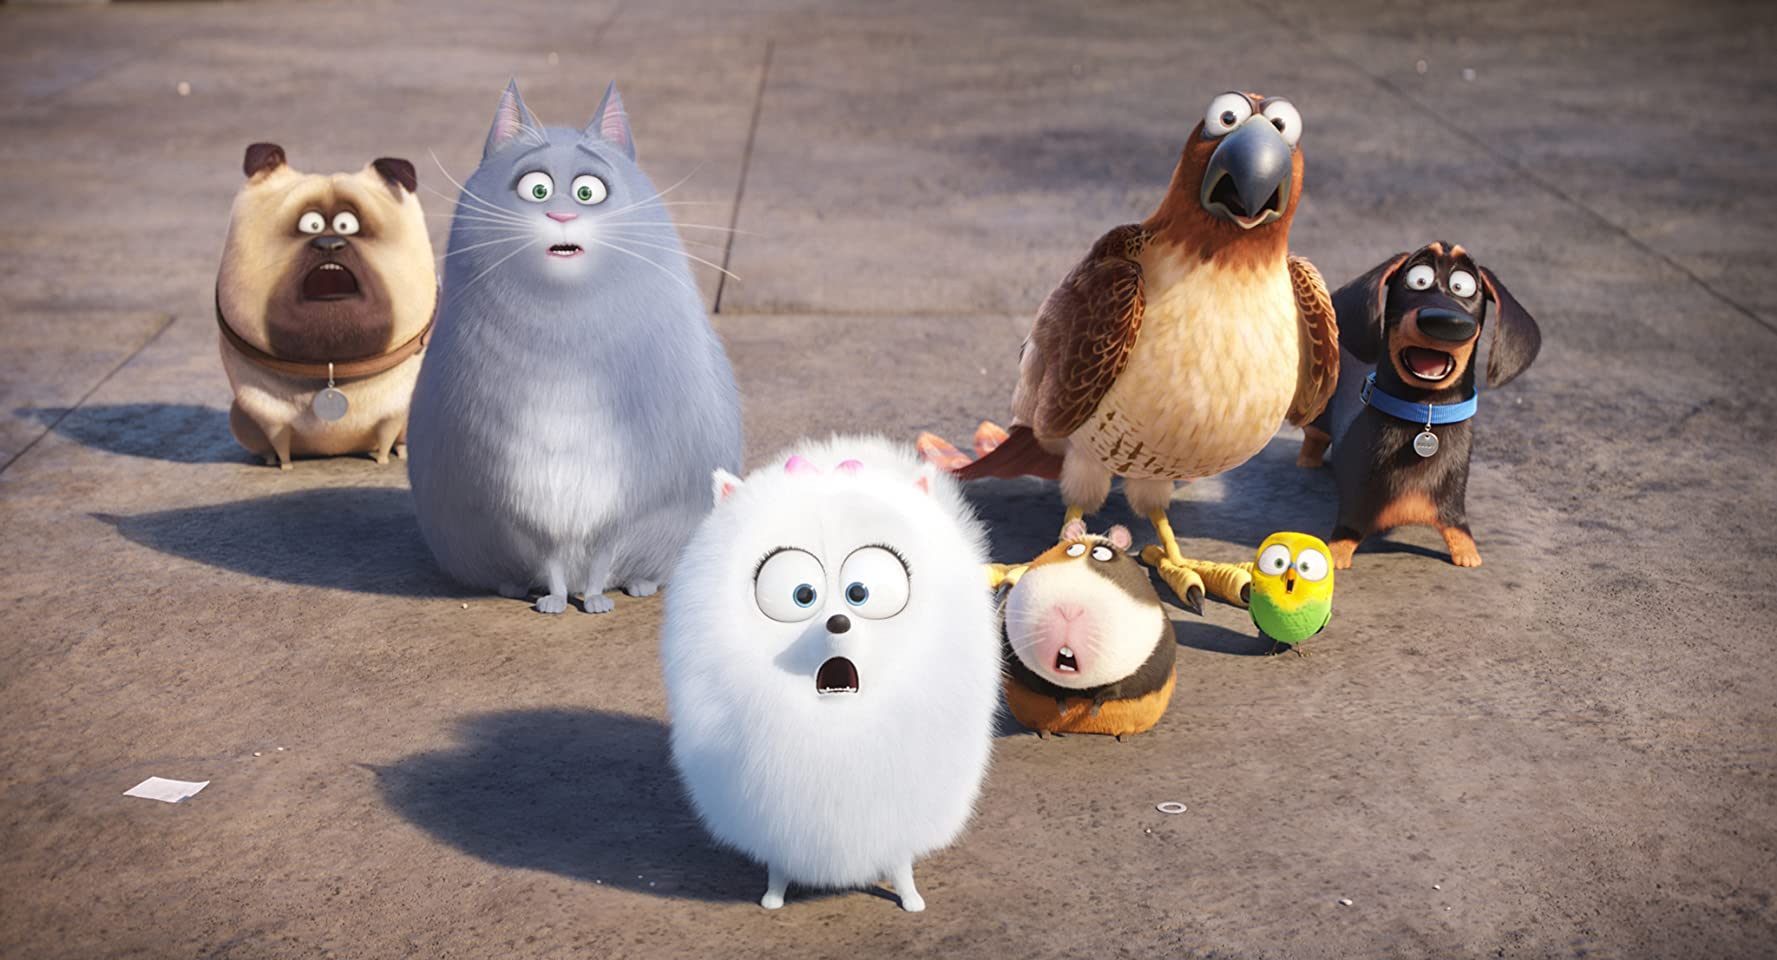 Albert Brooks, Tara Strong, Chris Renaud, Lake Bell, Bobby Moynihan, Jenny Slate, and Hannibal Buress in The Secret Life of Pets (2016)